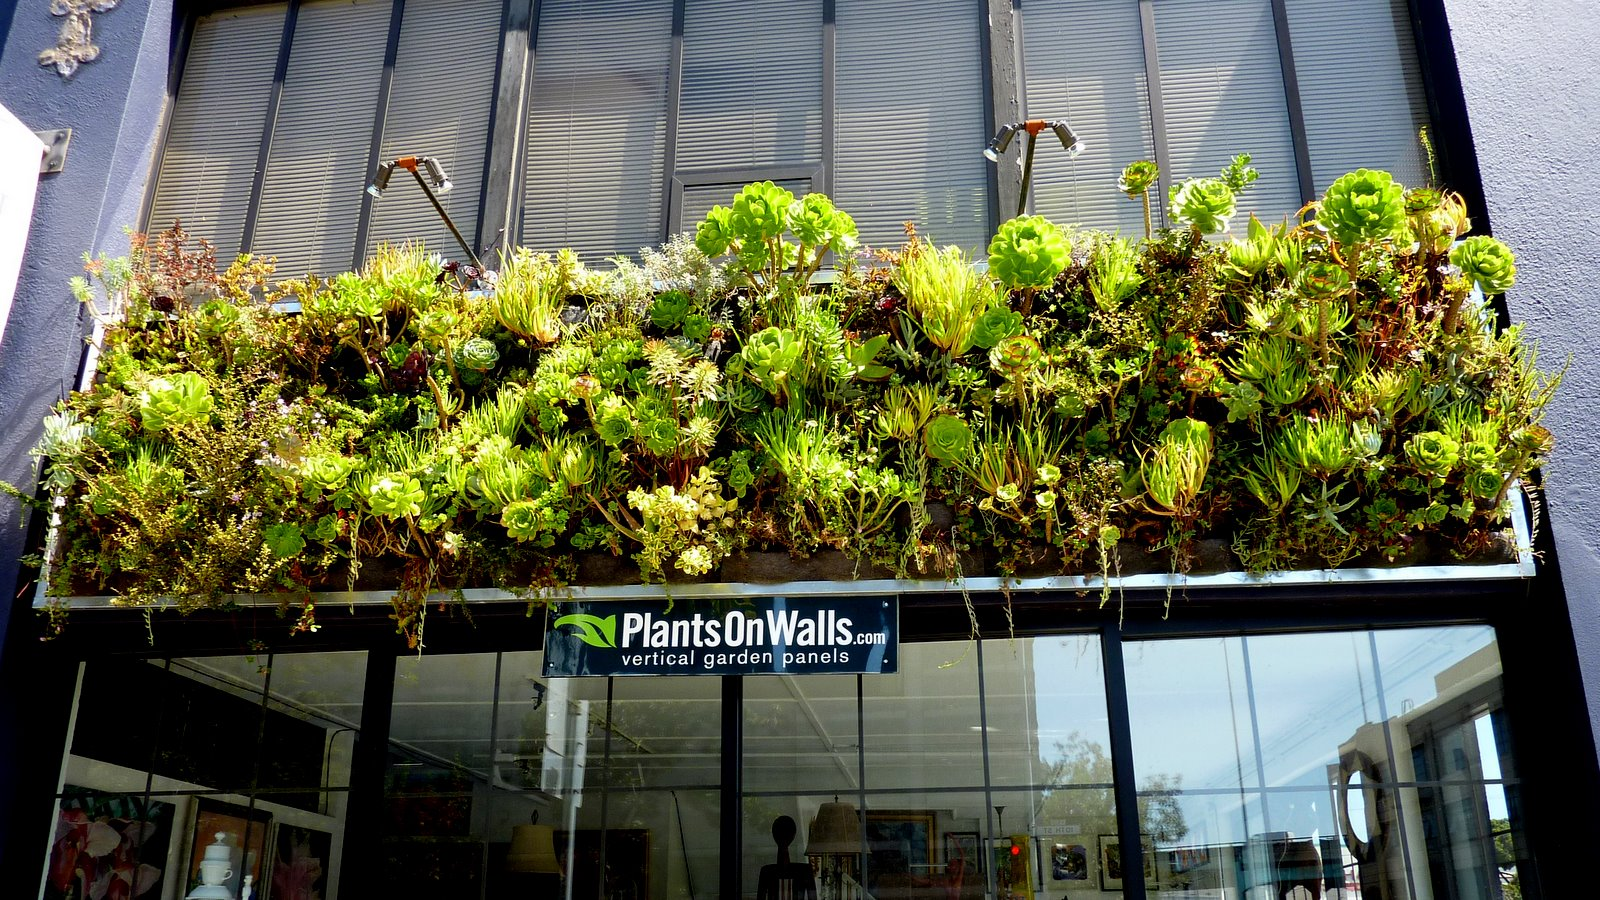 Plants On Walls vertical garden systems September 2011